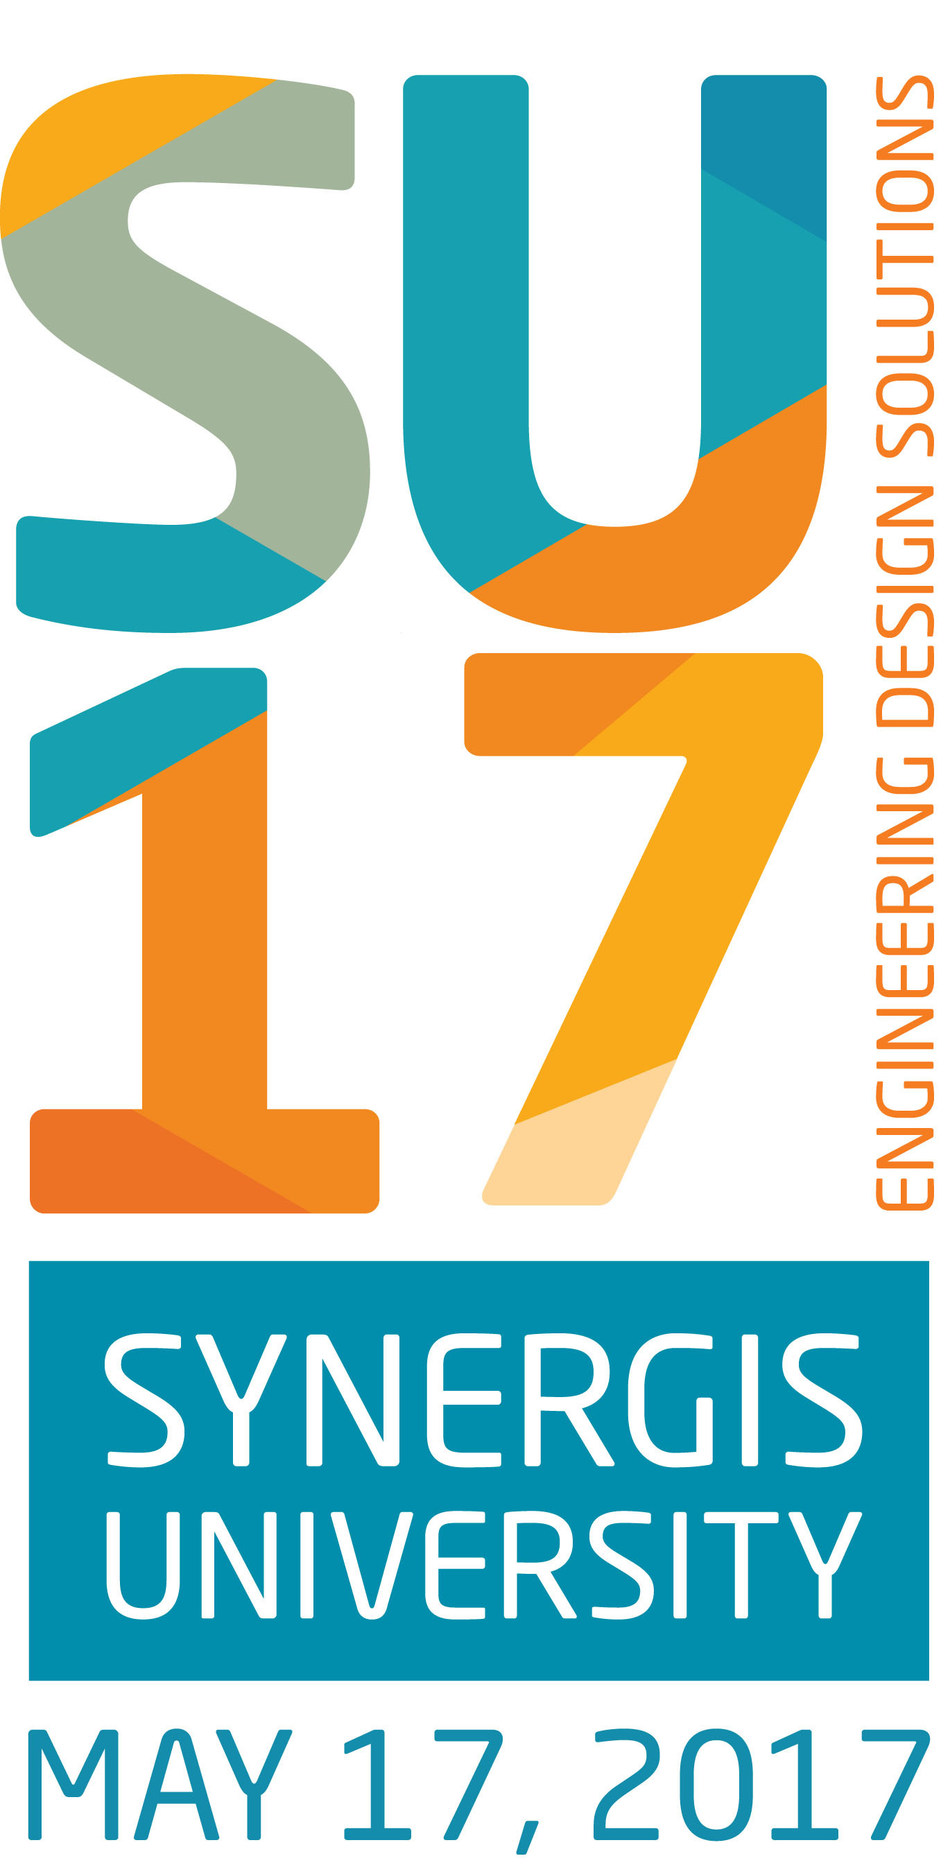 Join us for Synergis University. Visit www.synergisu.com for more information and to register.